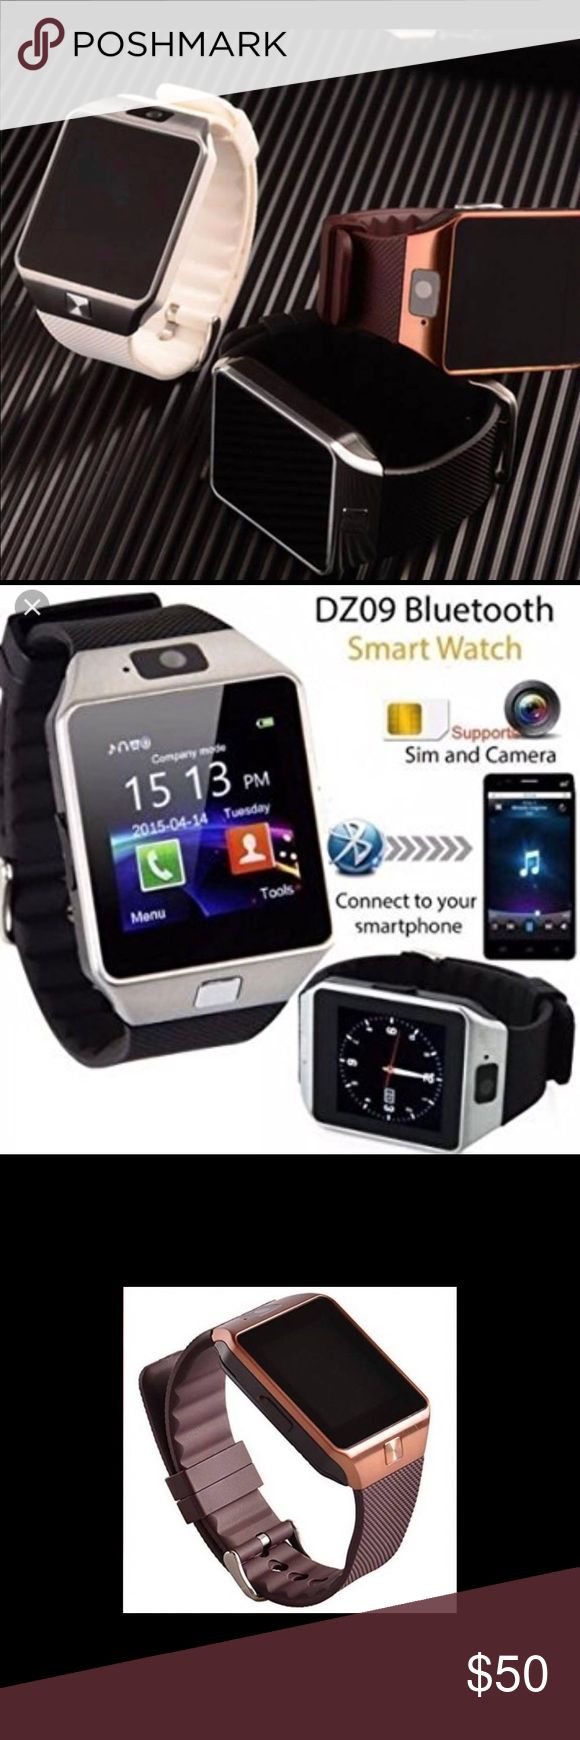 Smart watch with camera and Bluetooth Available in white with silver, Black with silver, brown with gold.  •Messaging •Bluetooth •Calling / Sim Card Ready •Remote Notifier•MP3•Calculator •Pedometer •Sleep Monitor  •Reminder •QR Code•Calendar•Alarm•Image Viewer •Sound Recorder•Camera•File Manager•Browser •Facebook•Twitter DZ09 Accessories Watches